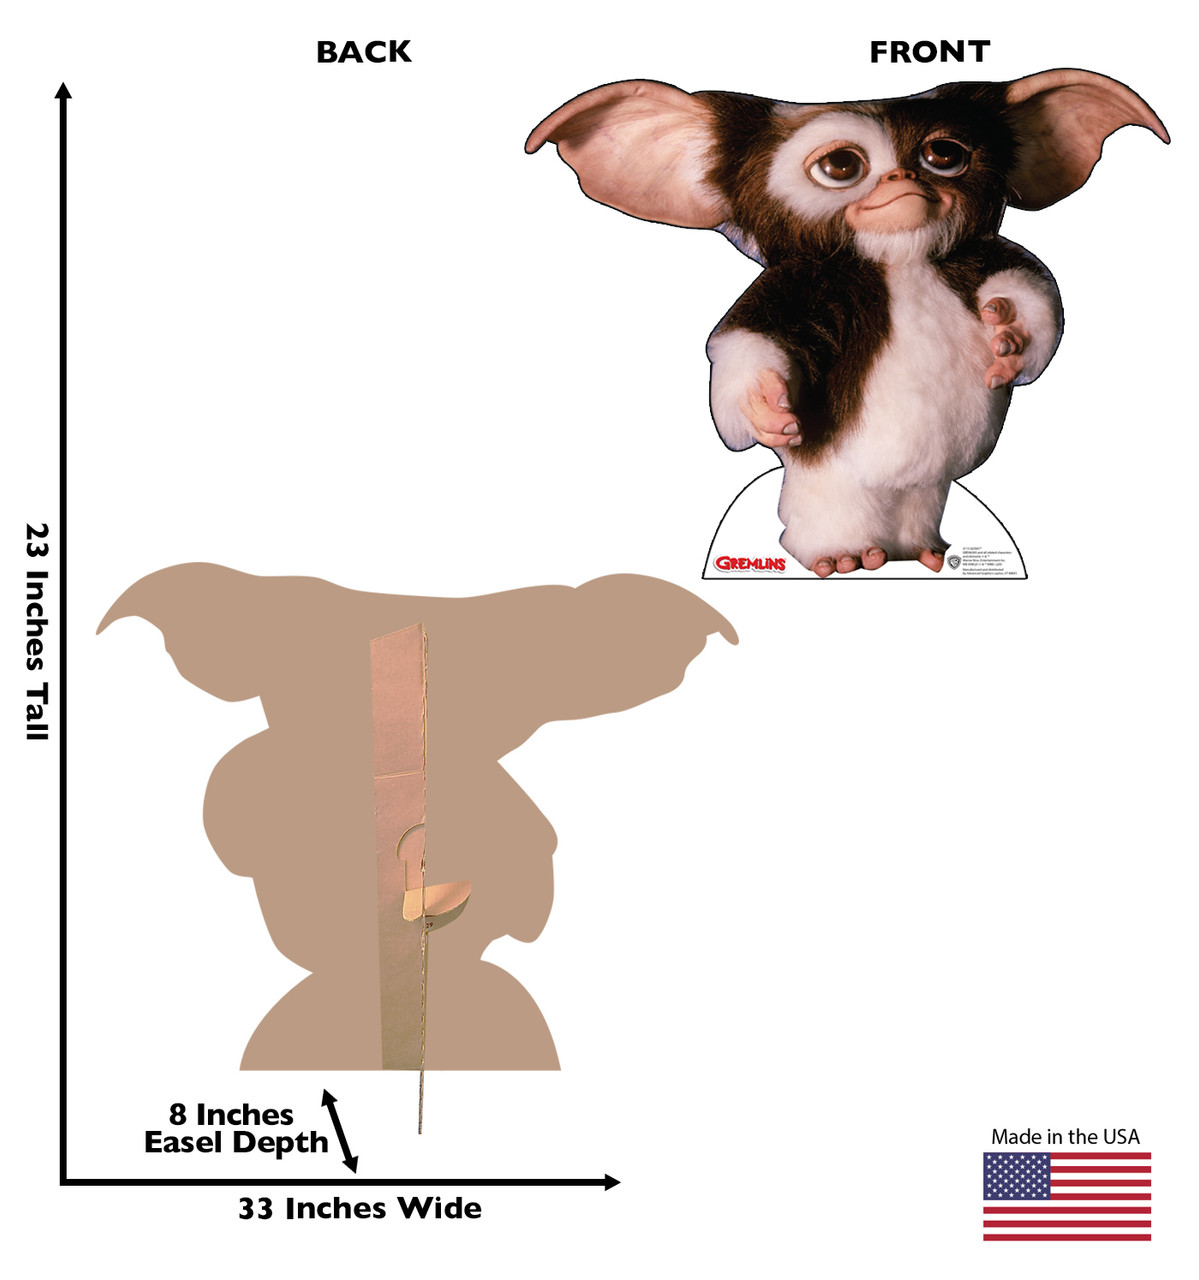 Life-size cardboard standee of GizmoTM from the movie Gremlins with front and back dimensions.